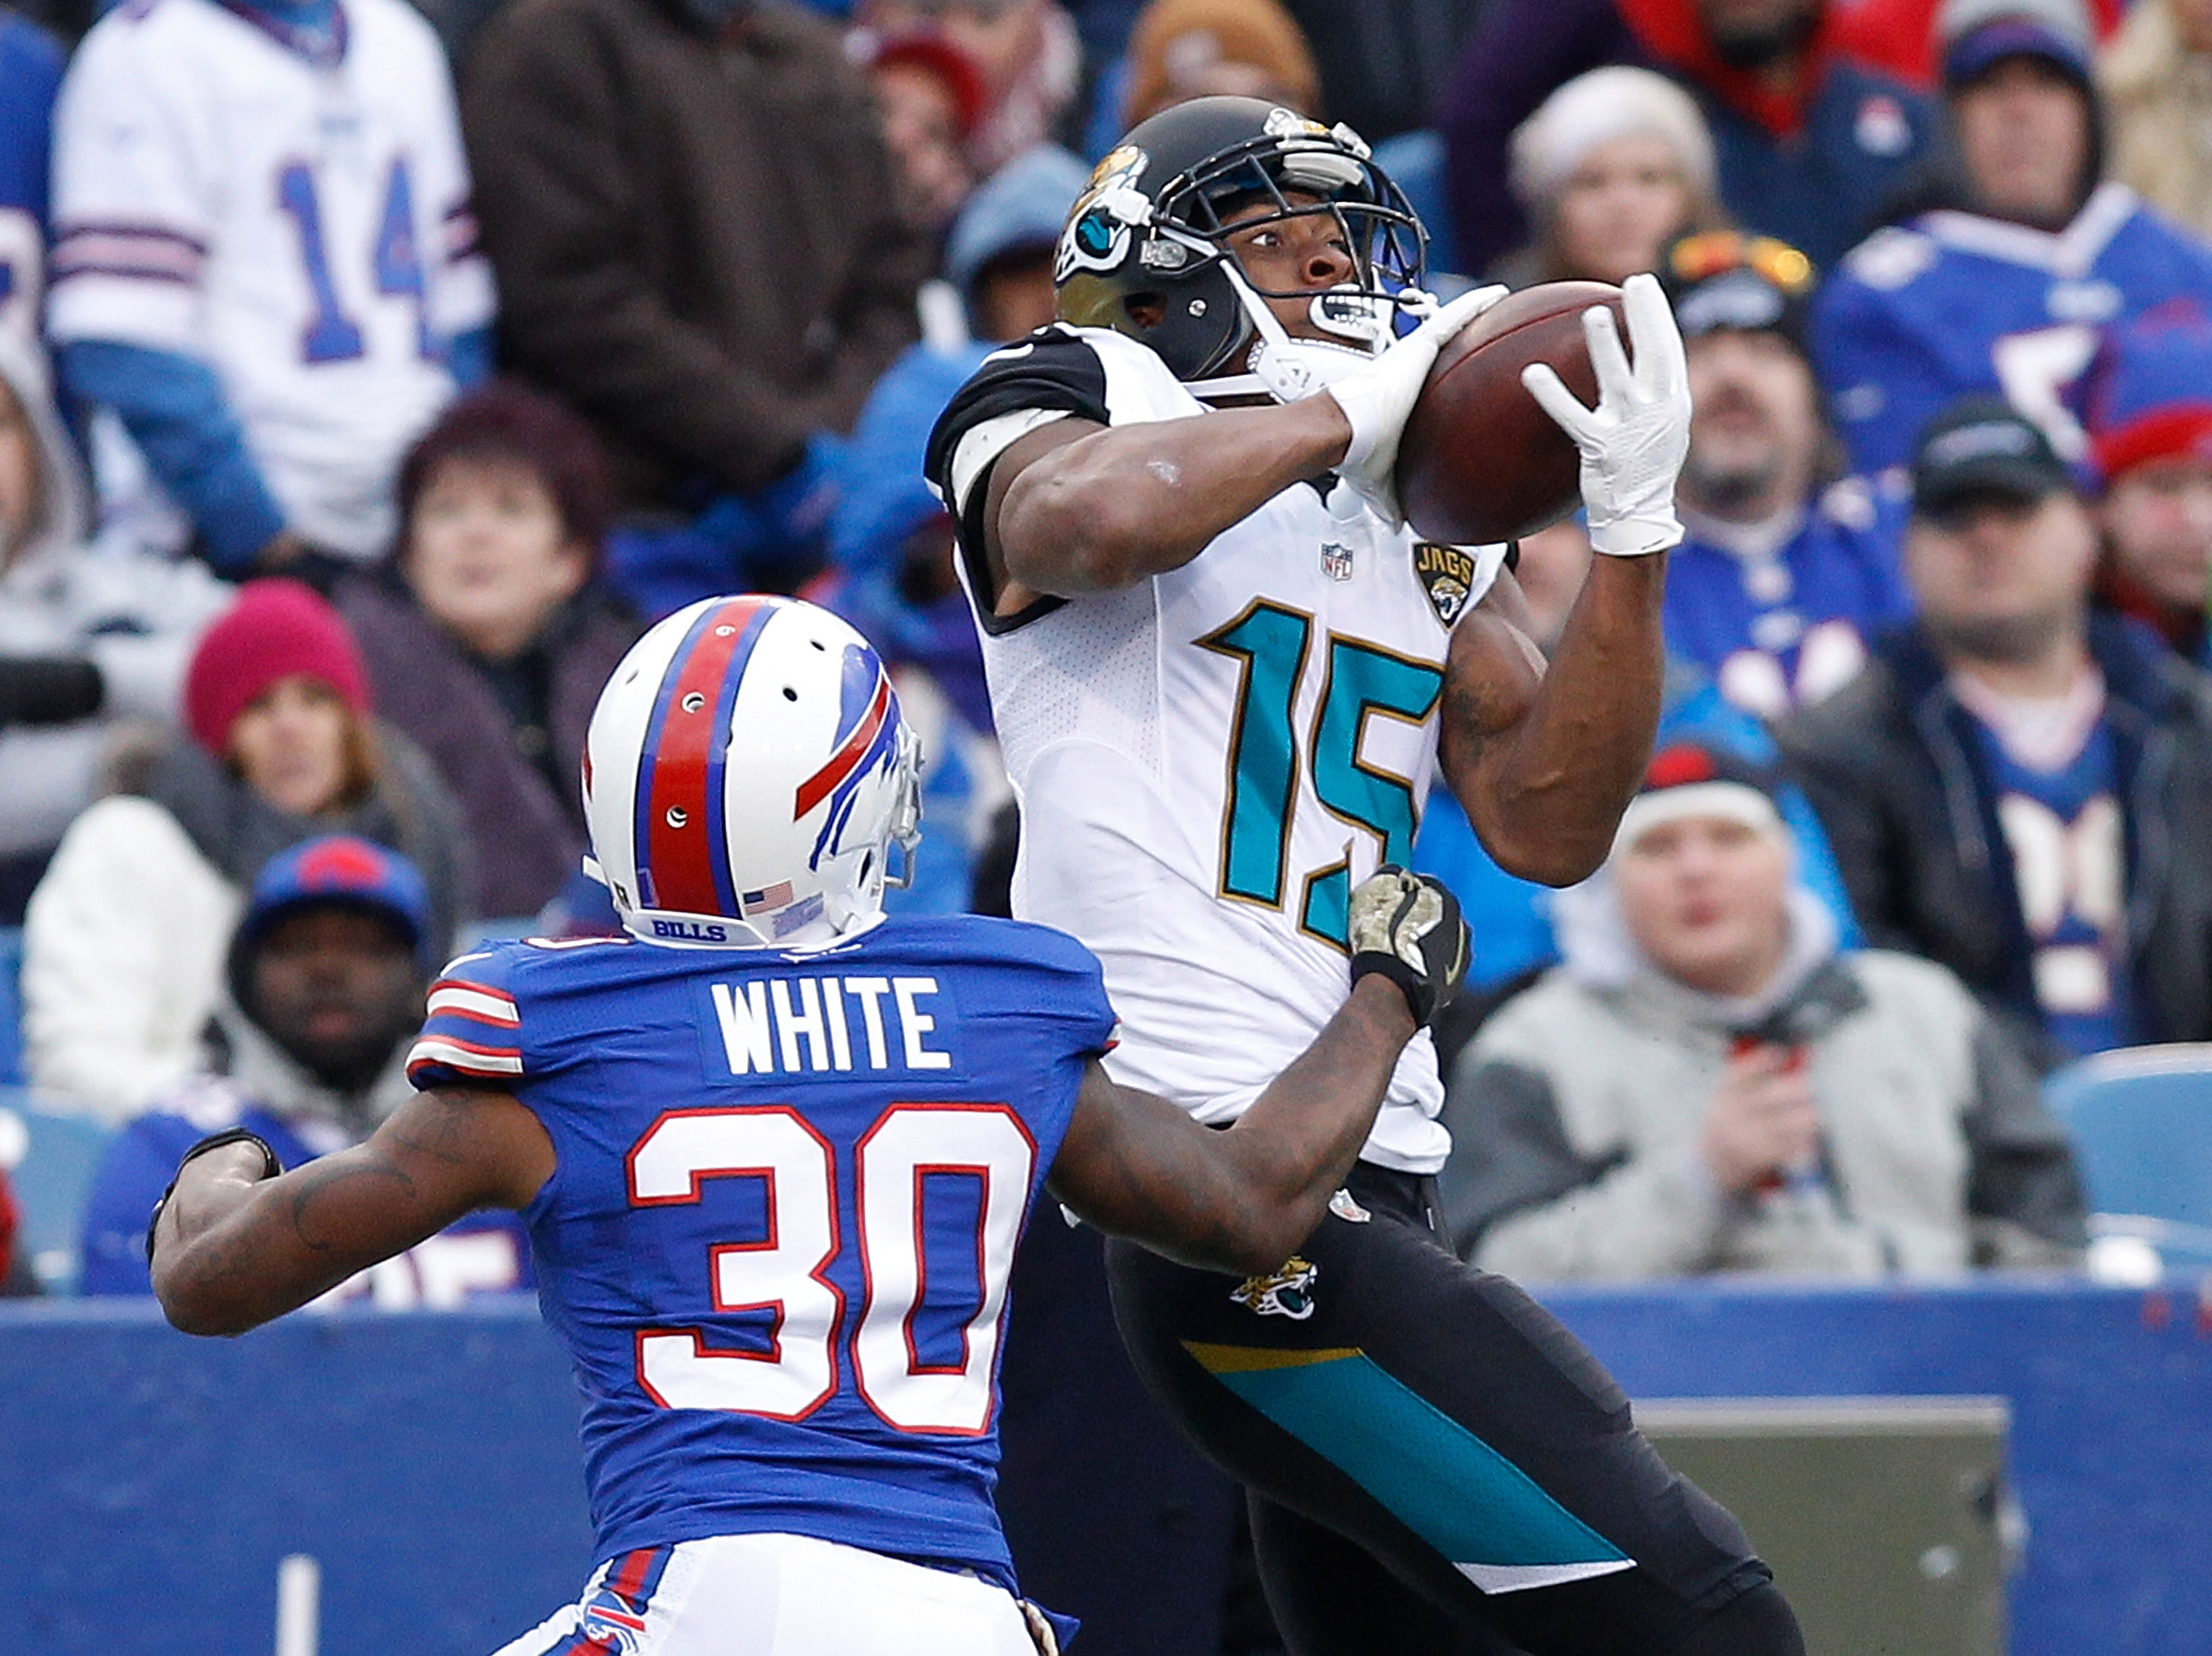 Nov 27, 2016; Orchard Park, NY, USA; Jacksonville Jaguars wide receiver Allen Robinson (15) catches a pass as Buffalo Bills cornerback Corey White (30) defends during the second half at New Era Field. The Bills won 28-21. Mandatory Credit: Kevin Hoffman-USA TODAY Sports